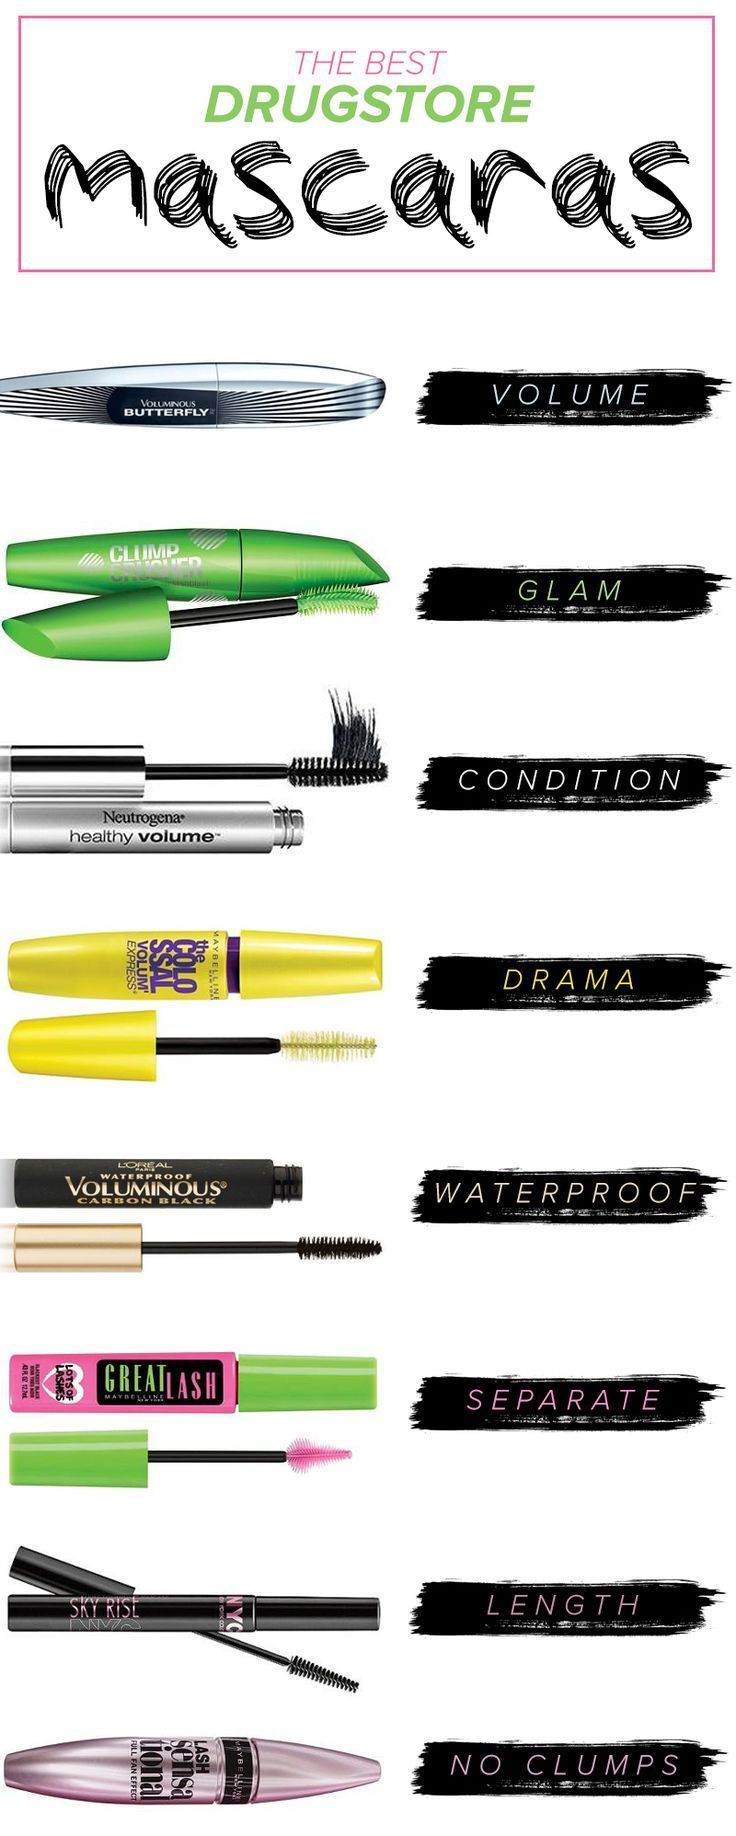 These are the best drugstore mascaras on the market. Whether you're looking for lengthening, waterproof or volume, these are the top mascaras you should try.